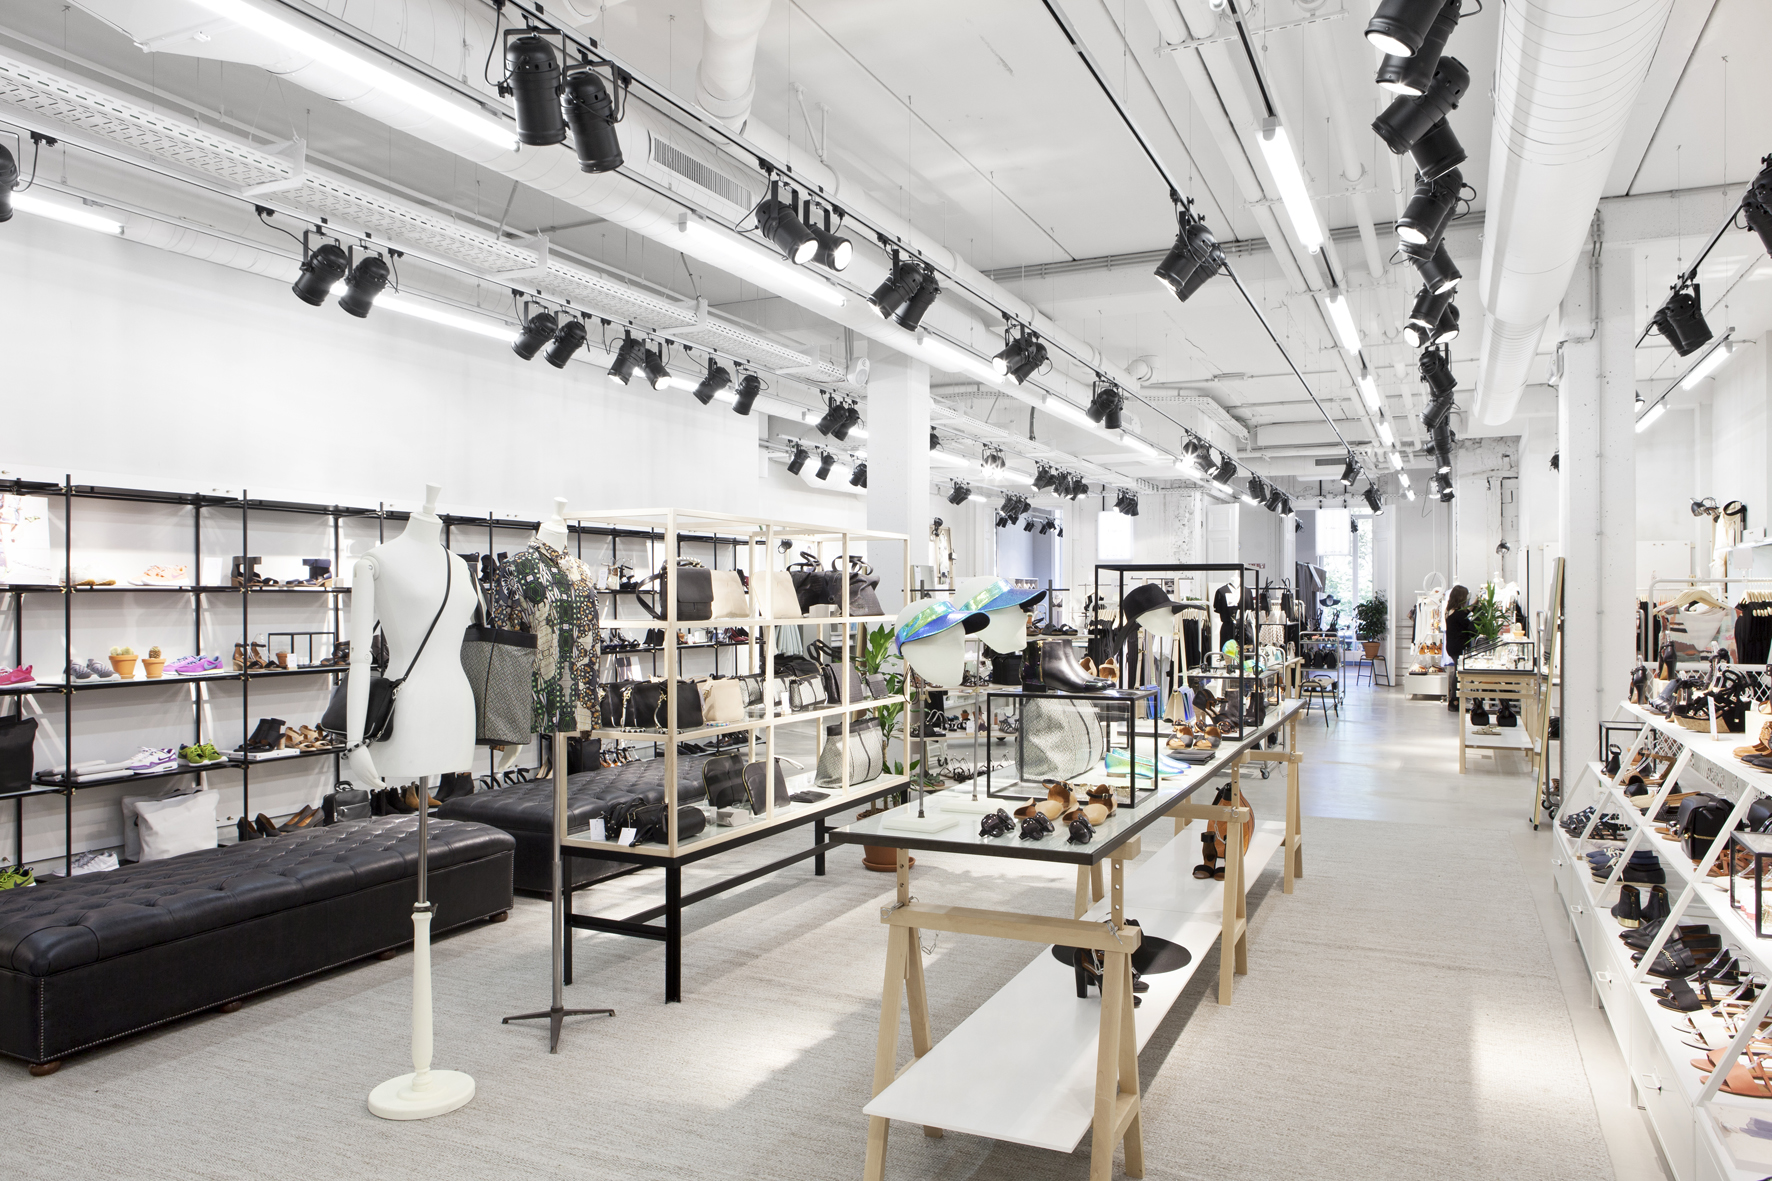 Womenswear label & Other Stories was launched by H&M in , and has grown by leaps and bounds since then. On Friday August 31, & Other Stories is inaugurating its third Parisian store, in rue Vieille-du-Temple, located at remarkable sqaure-metre premises in the hip Marais district.